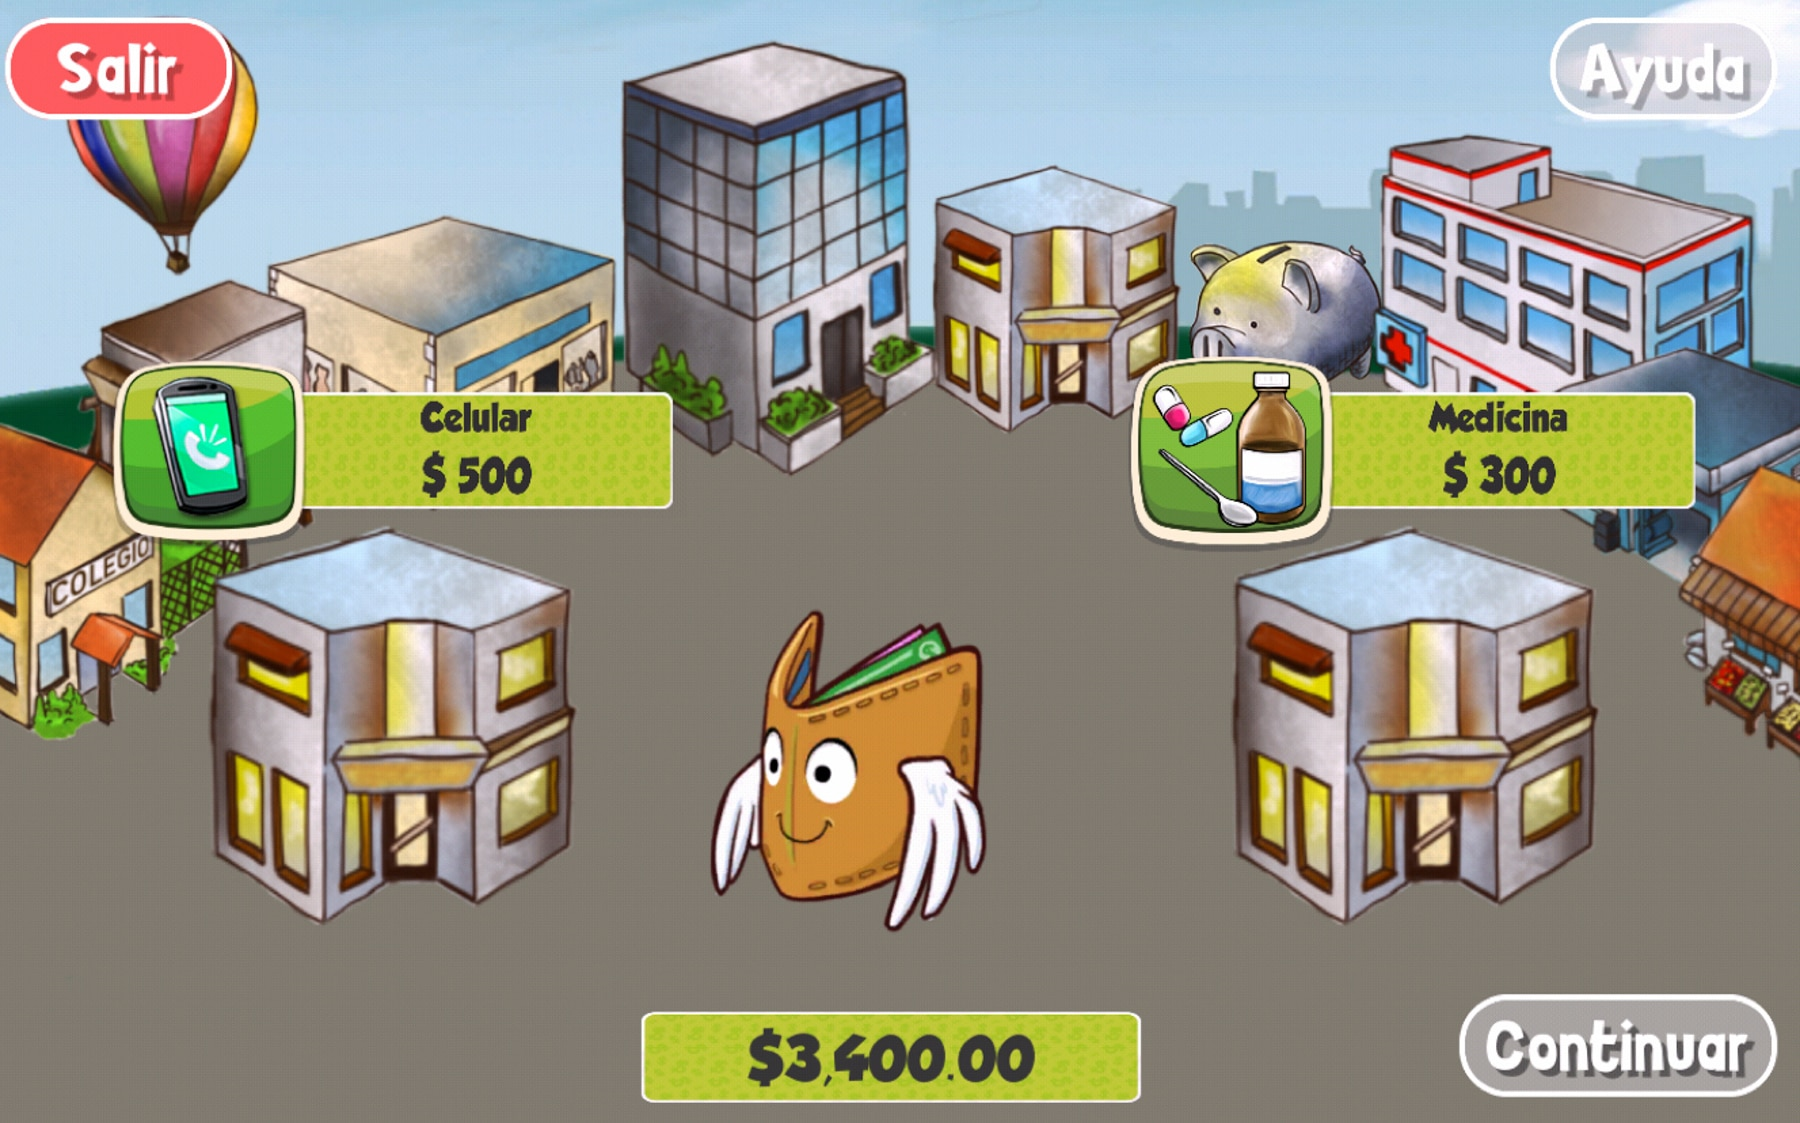 Cartoon town with animated wallet and information buttons overlaid (Fundación Capital)